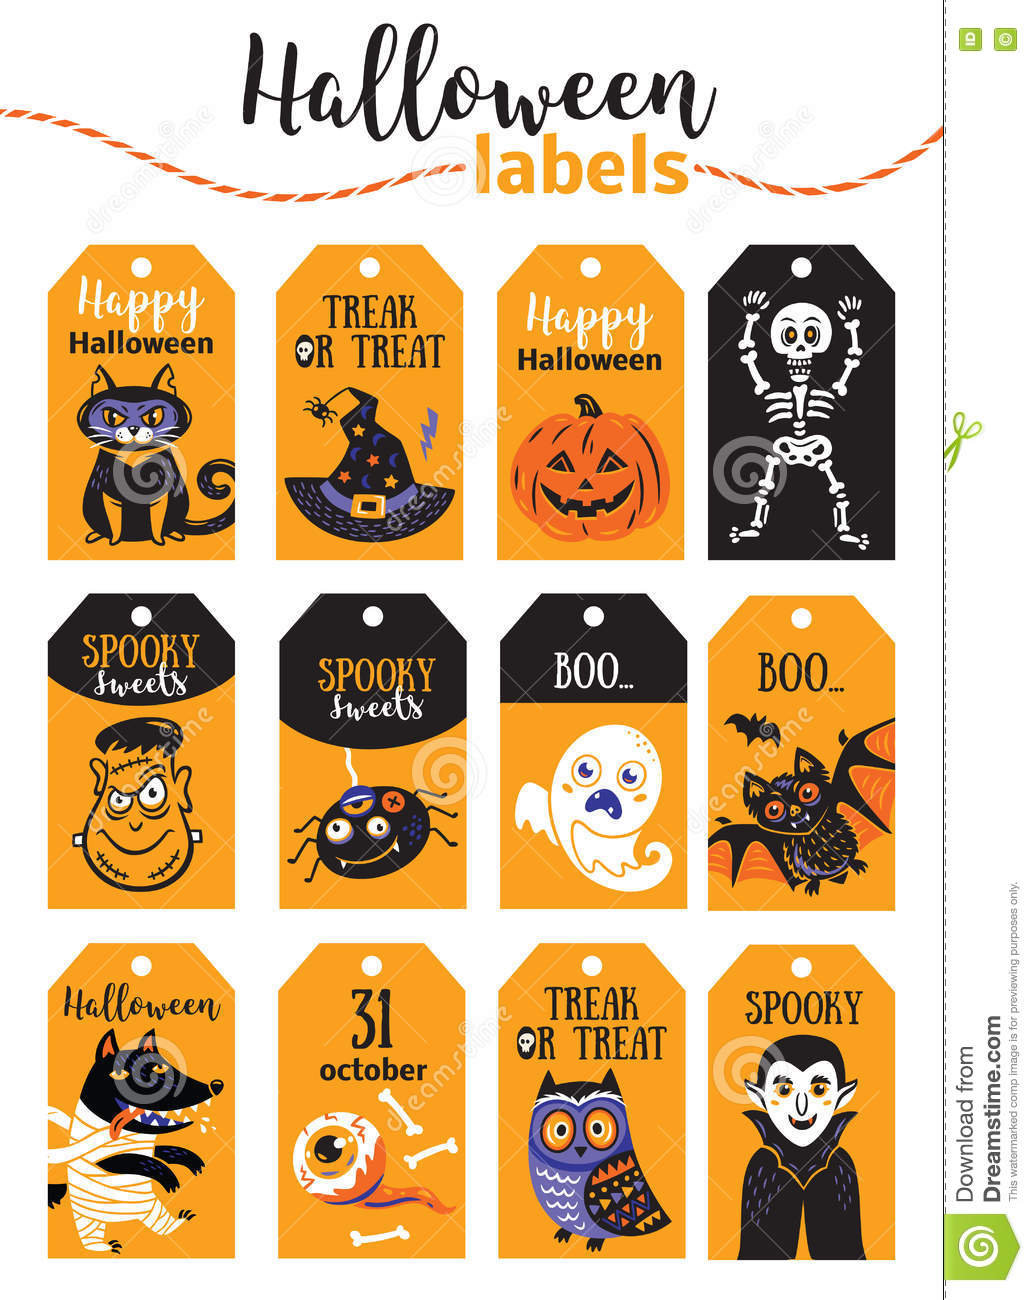 photograph about Happy Halloween Cards Printable referred to as Preset Of Classic Delighted Halloween Badges And Labels. Cartoon